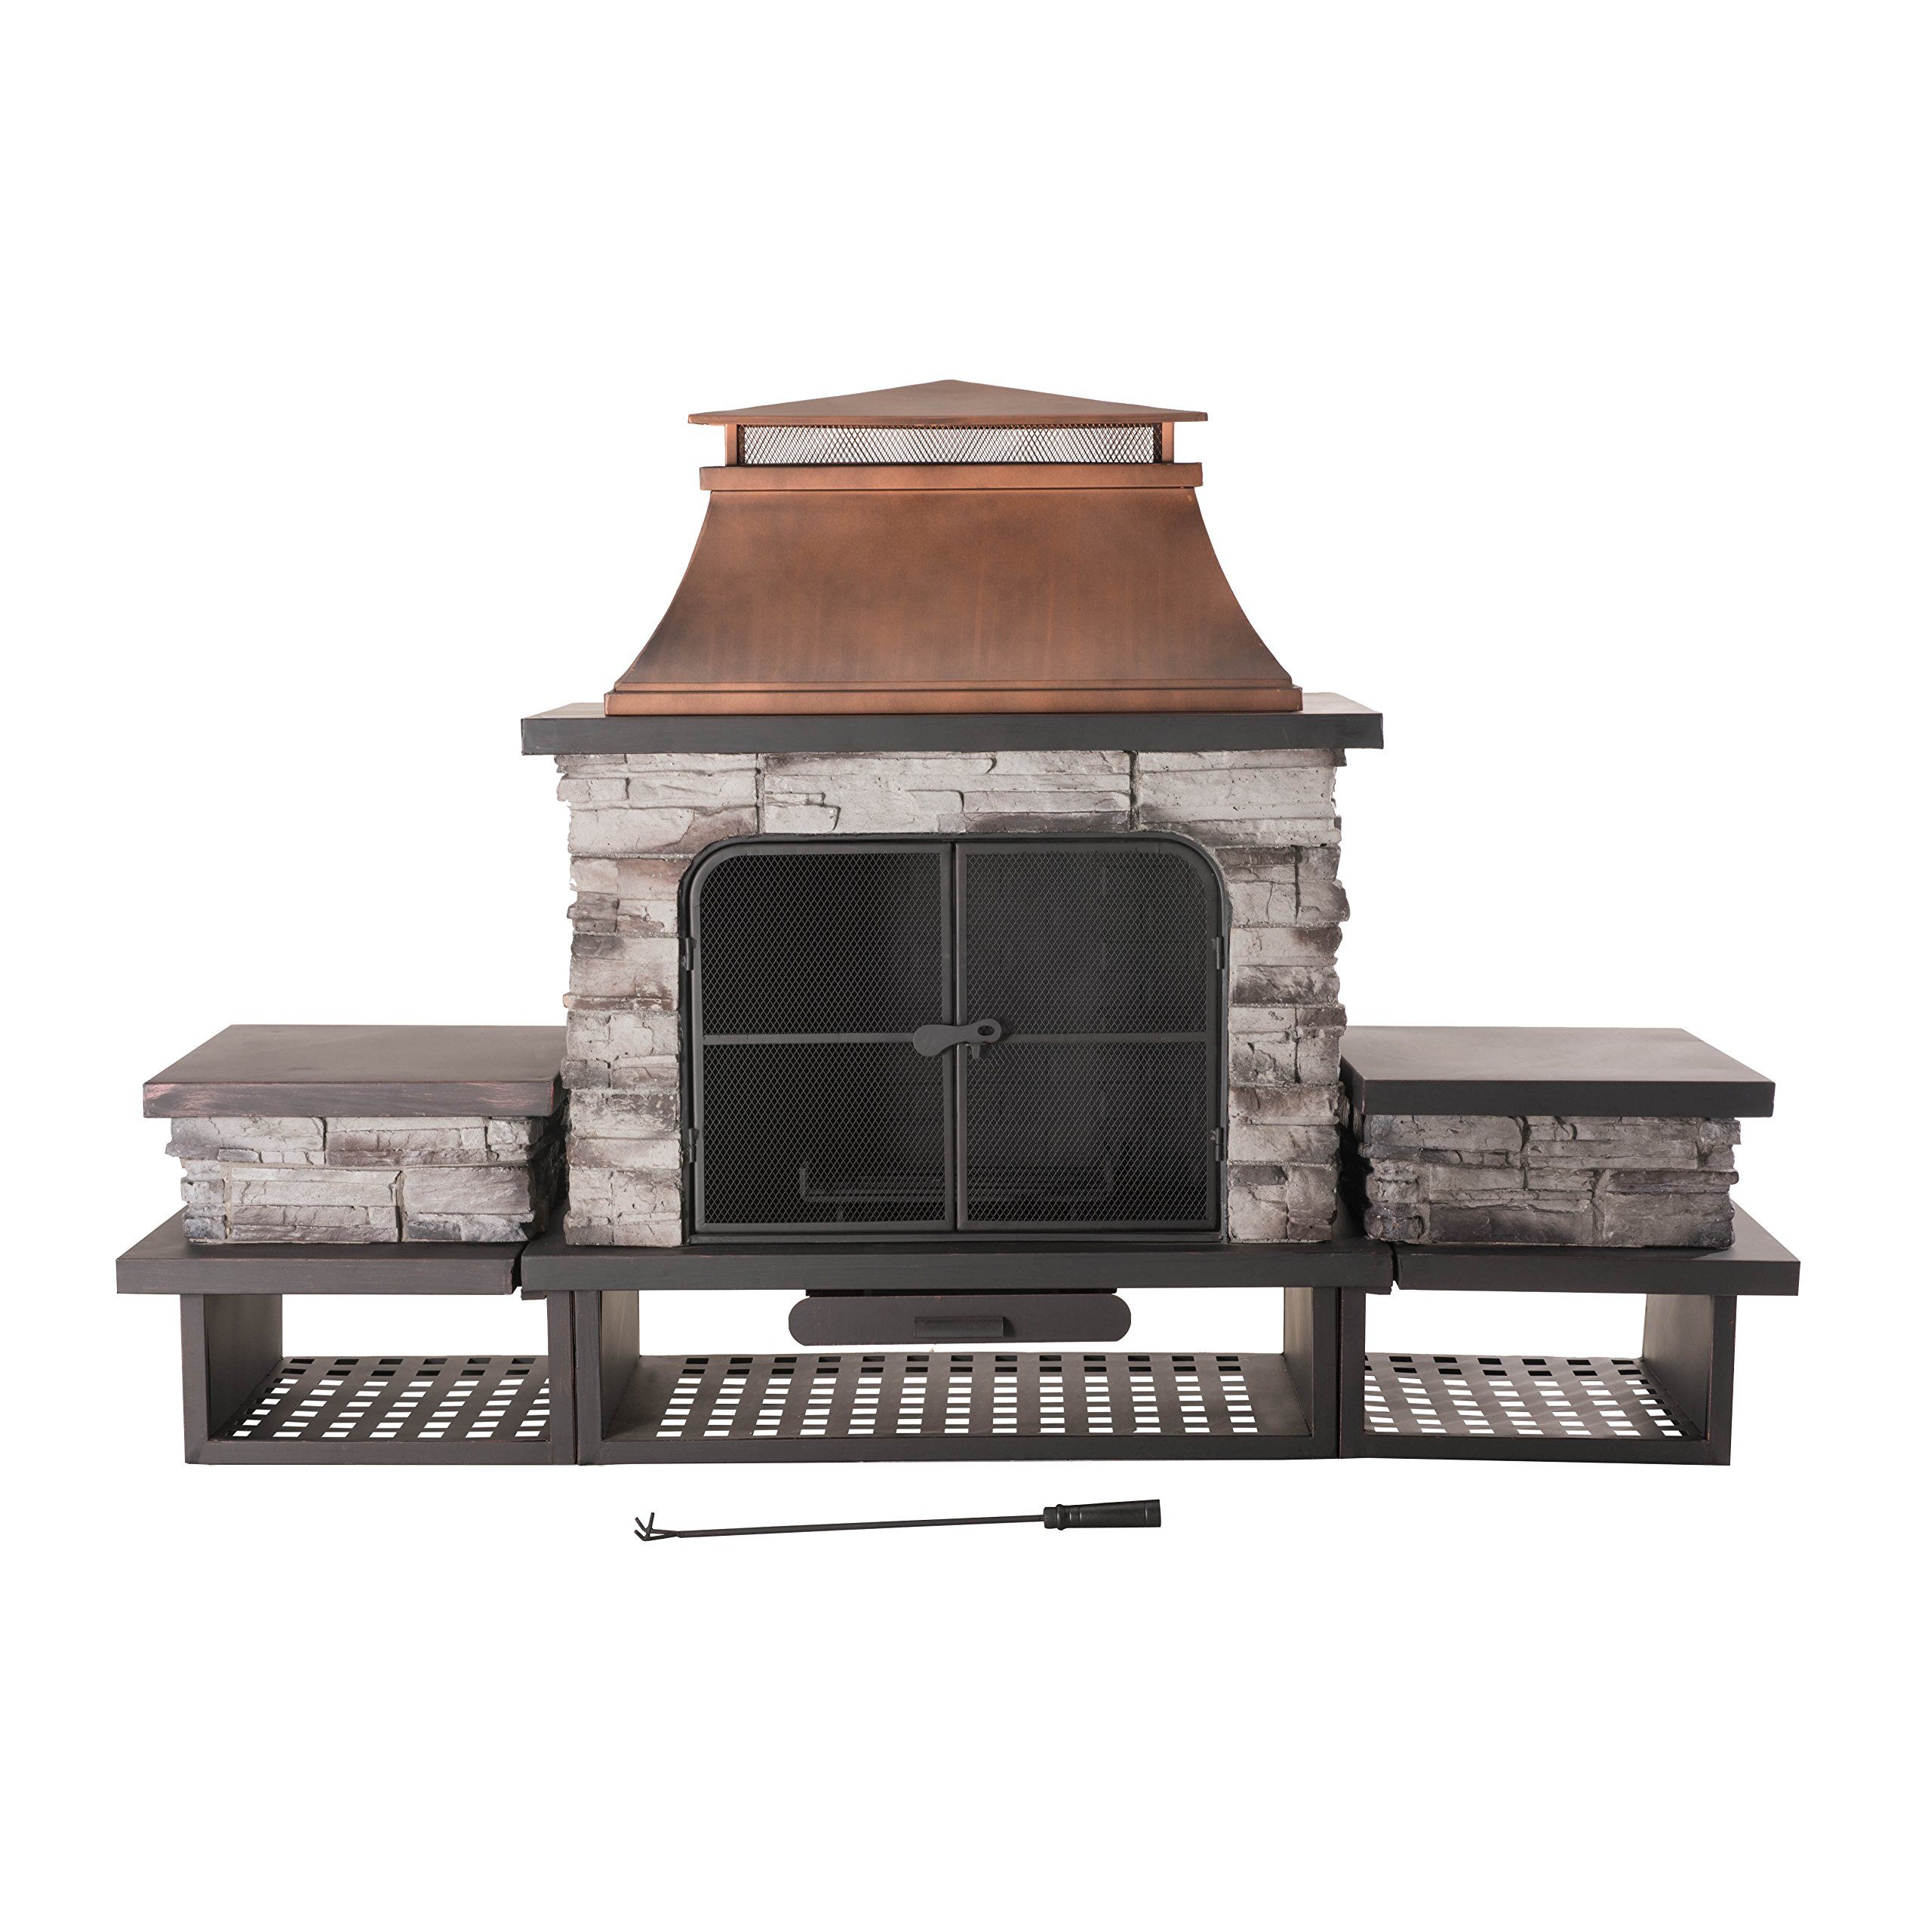 Sunjoy Bel Aire Fireplace large with two table-flats by Sunjoy